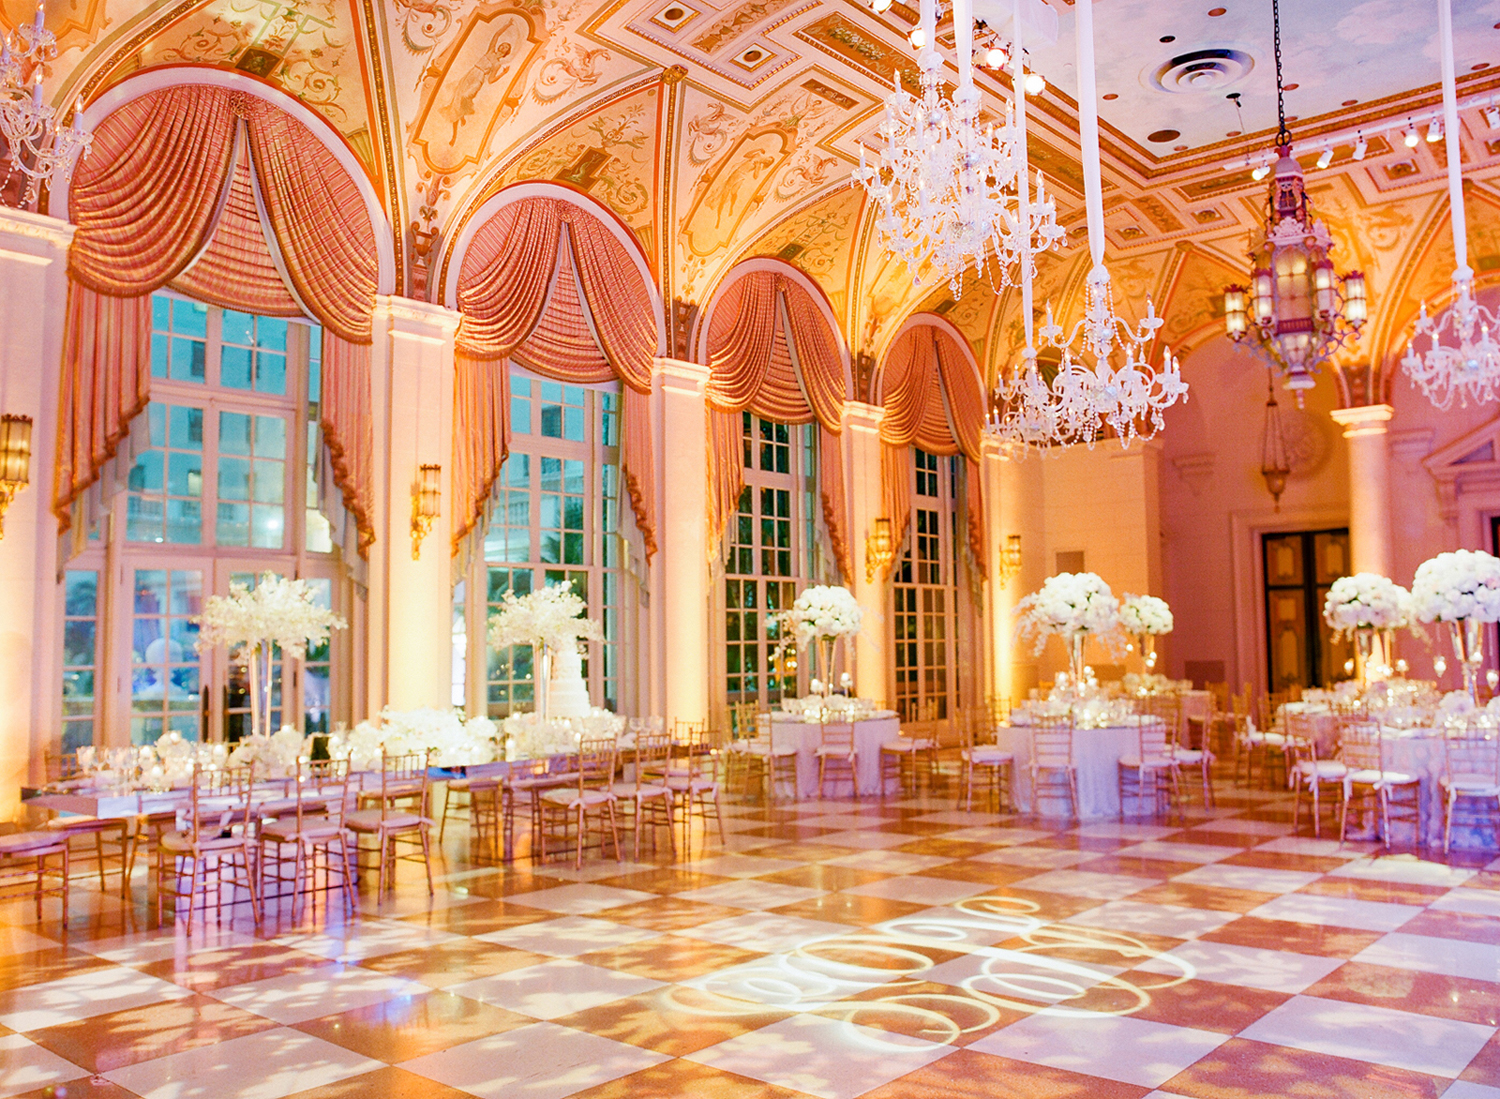 Wedding Venue Ideas Real Wedding Inspiration For Popular Venues